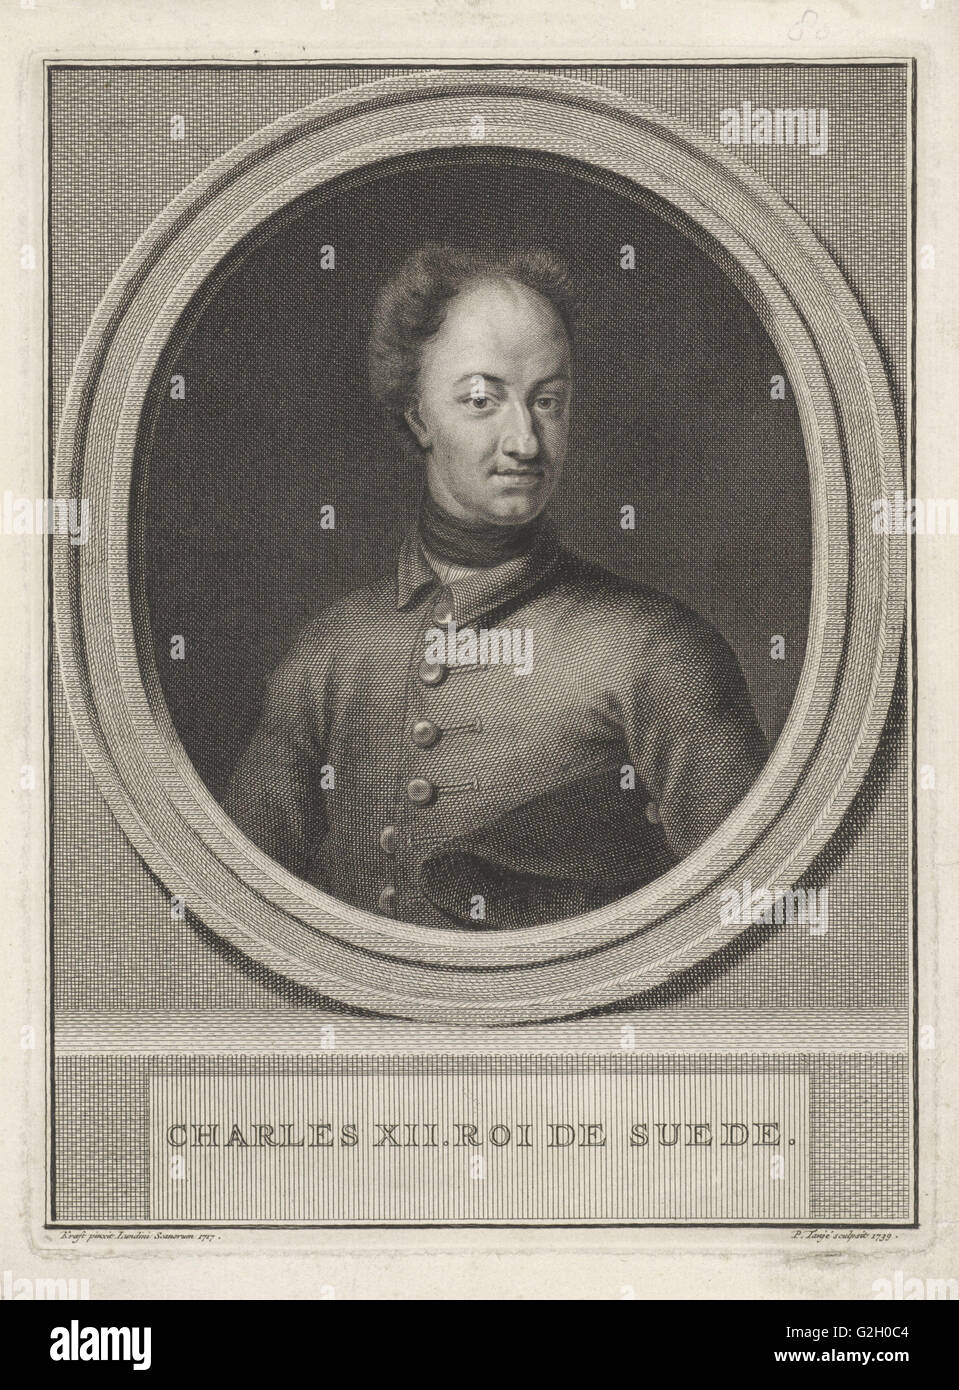 Portrait of King Charles XII of Sweden, Pieter Tanjé, 1739 - Stock Image